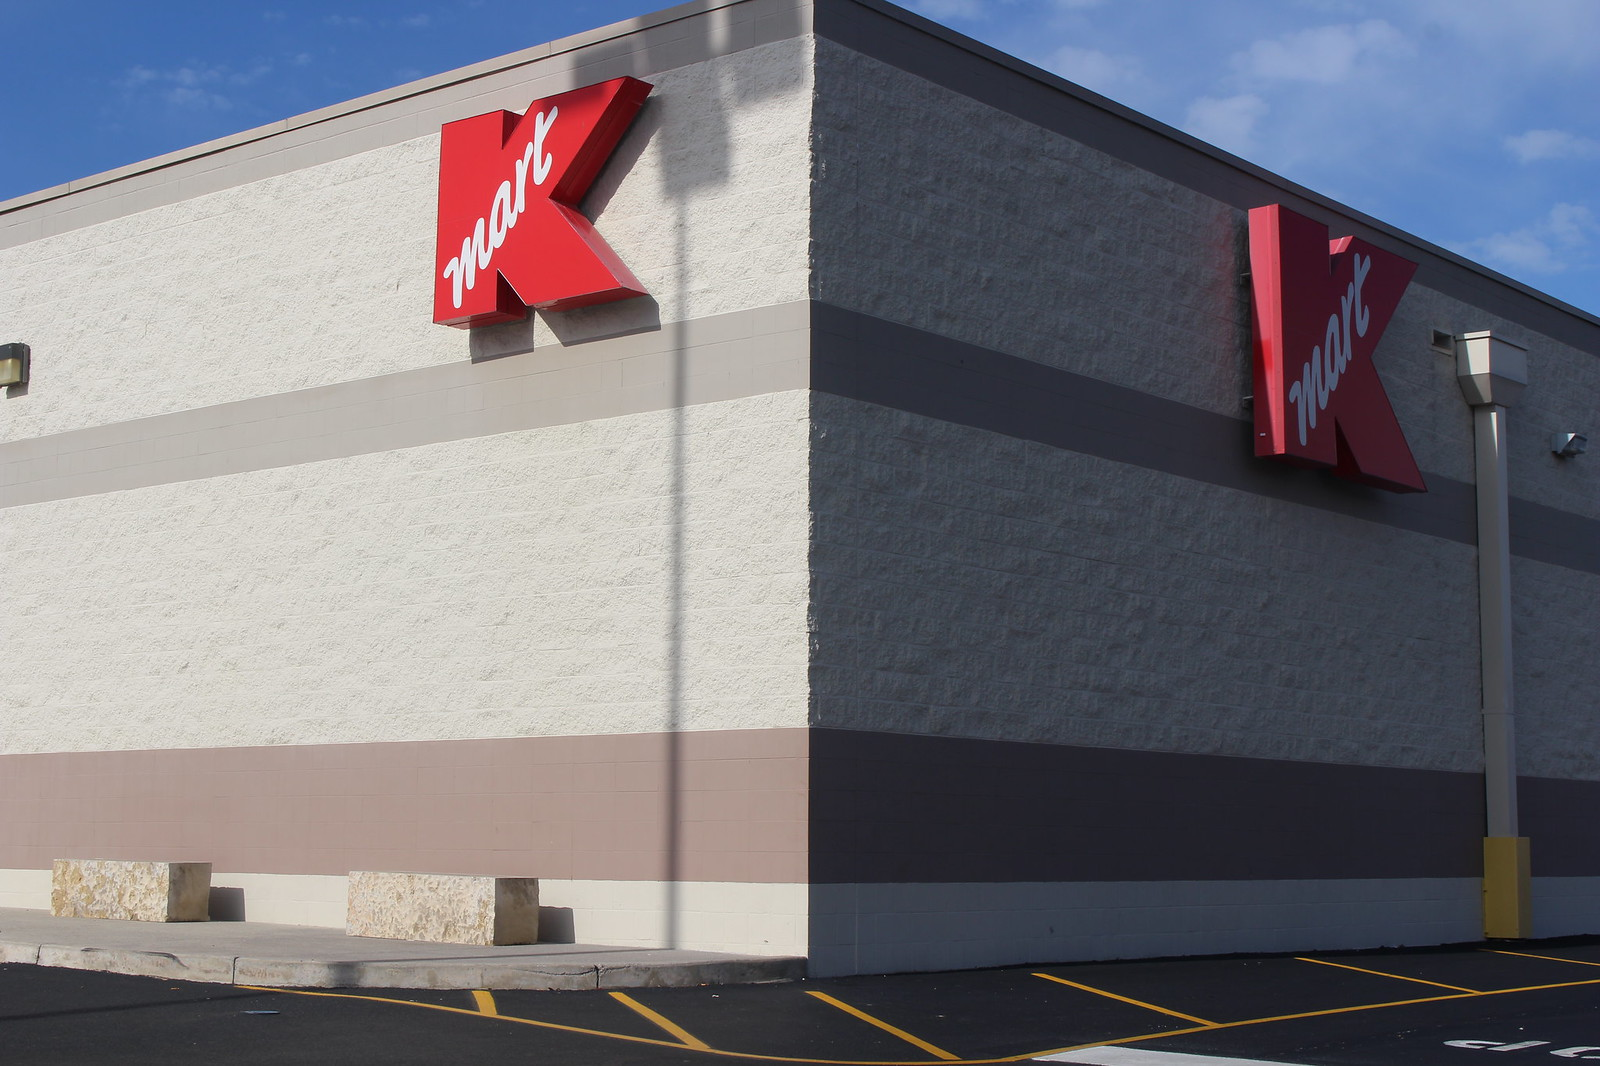 Kmart -- Cleveland, Tennessee